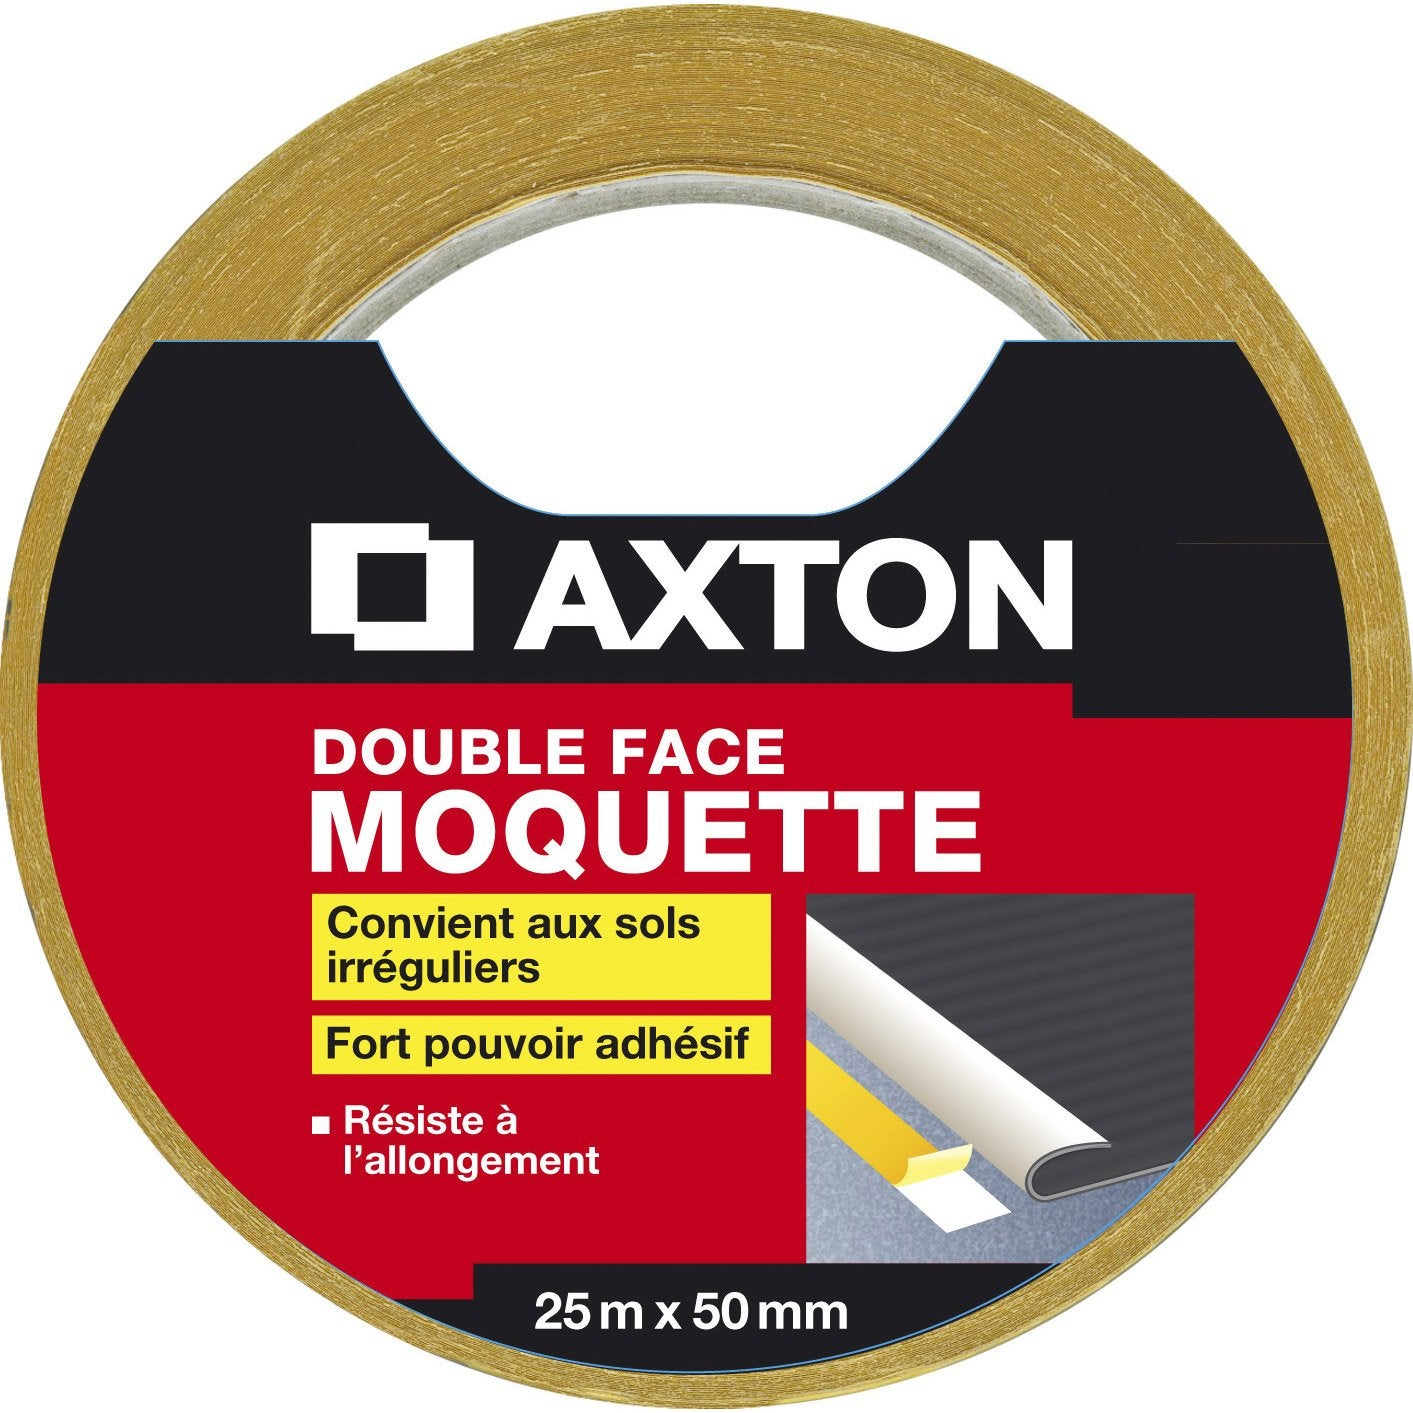 Double face moquette axton 50 mm x 25 m leroy merlin - Double face leroy merlin ...